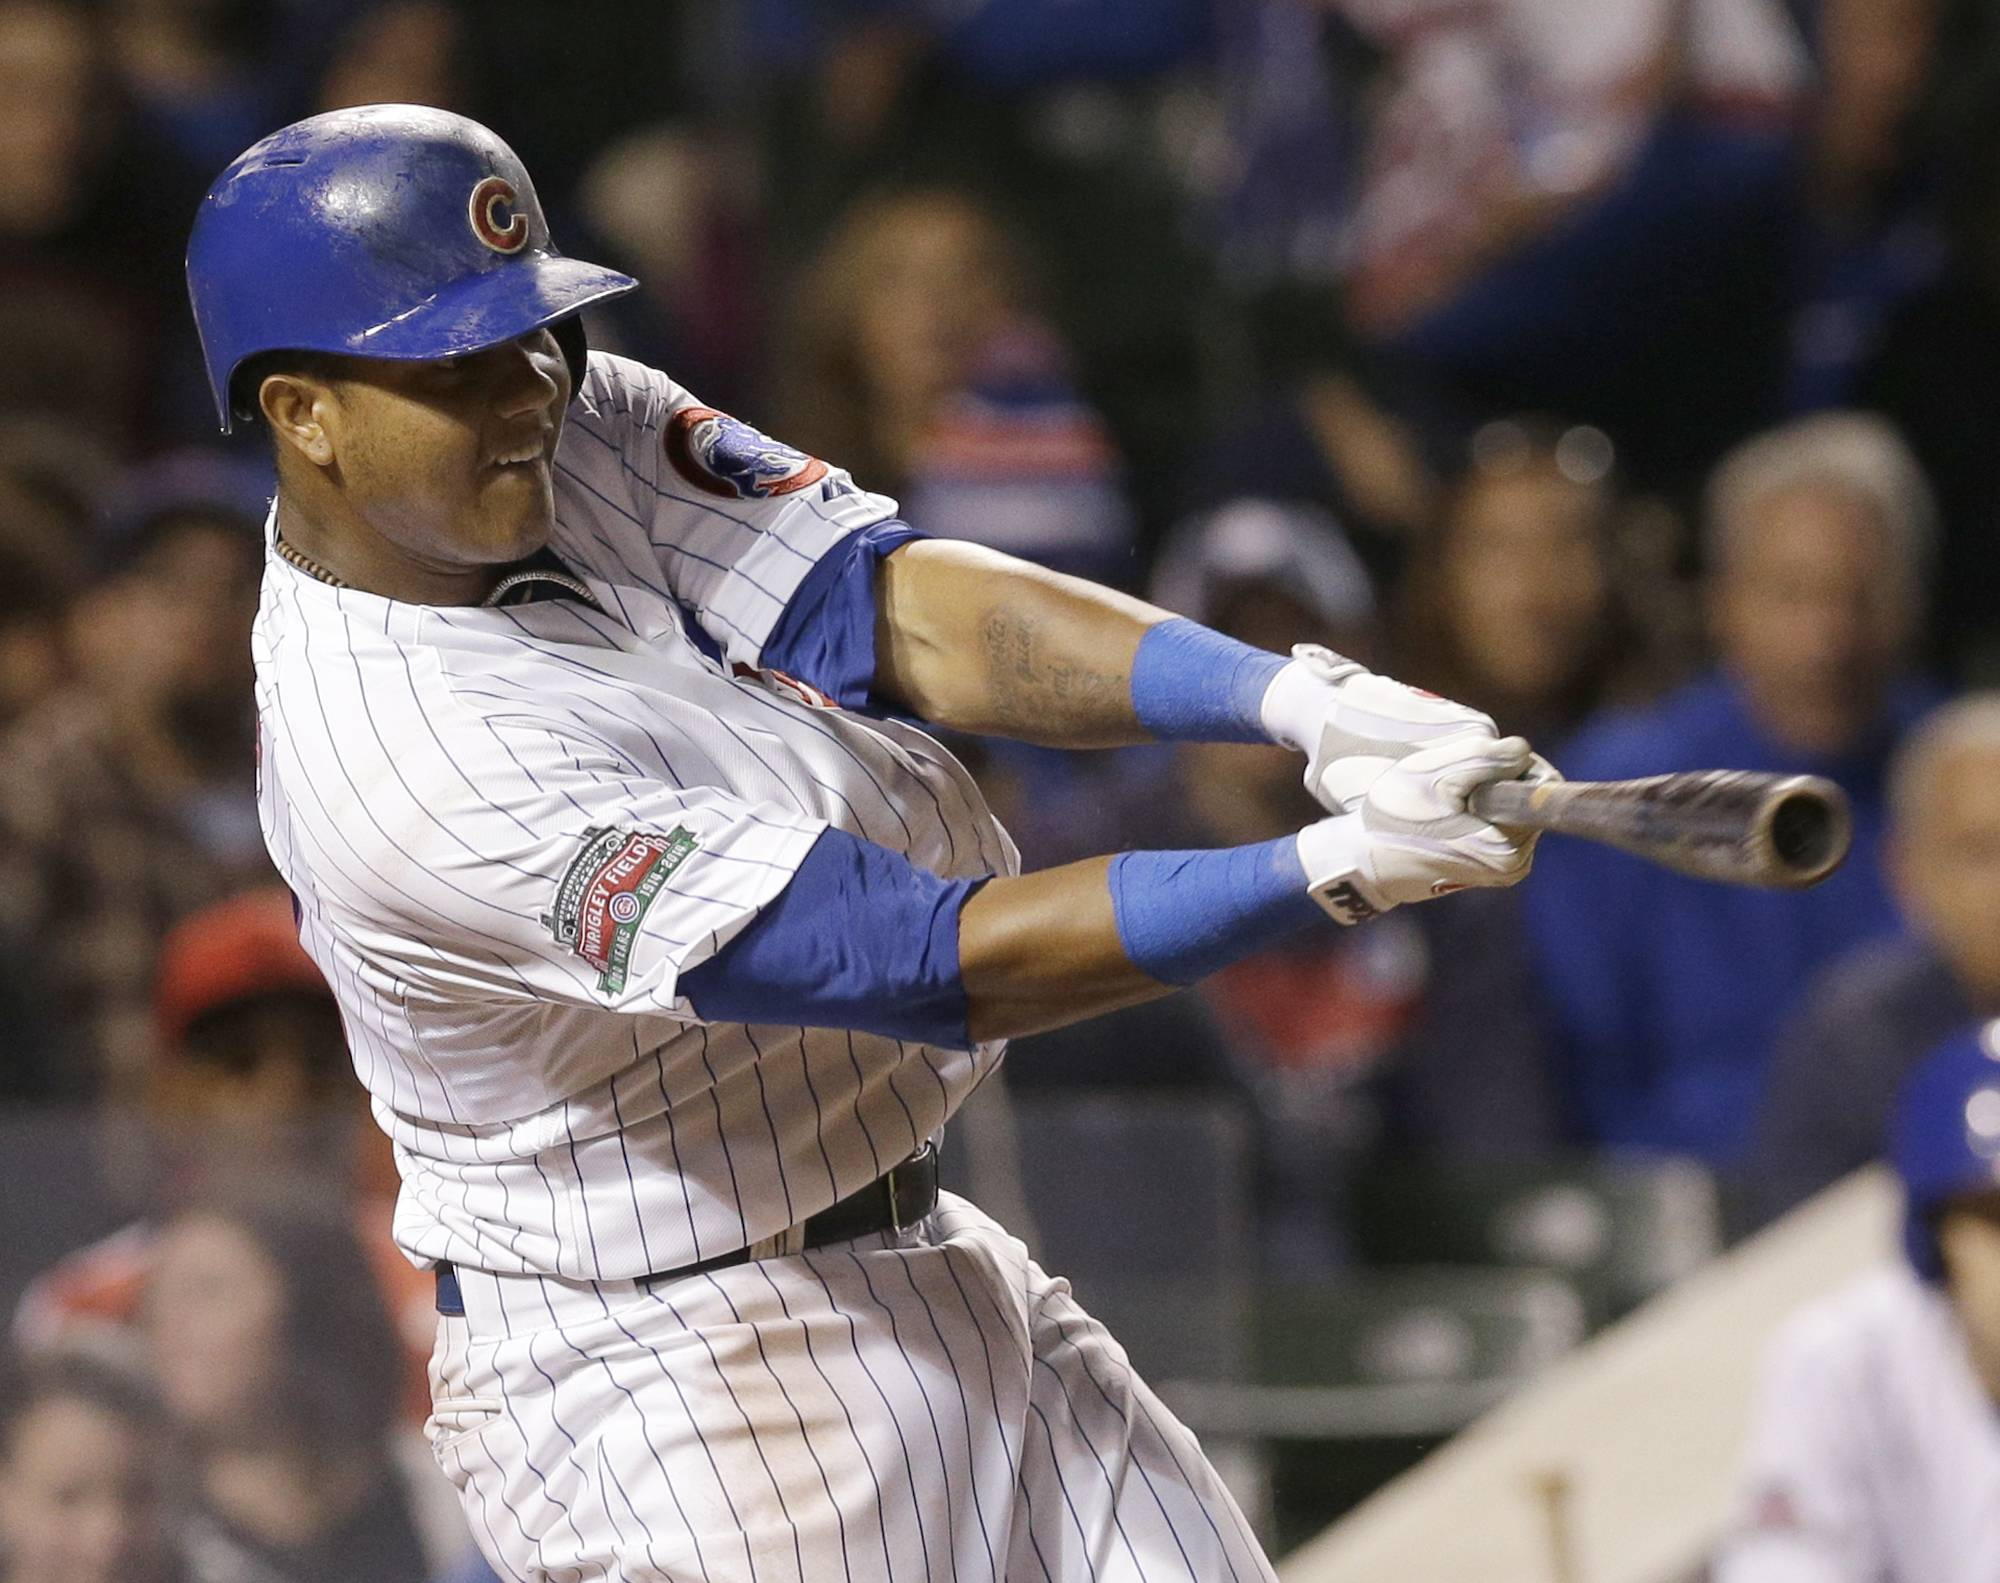 Chicago Cubs' Starlin Castro hits two-run single during the fifth inning of a baseball game against the New York Mets in Chicago, Wednesday, June 4, 2014.